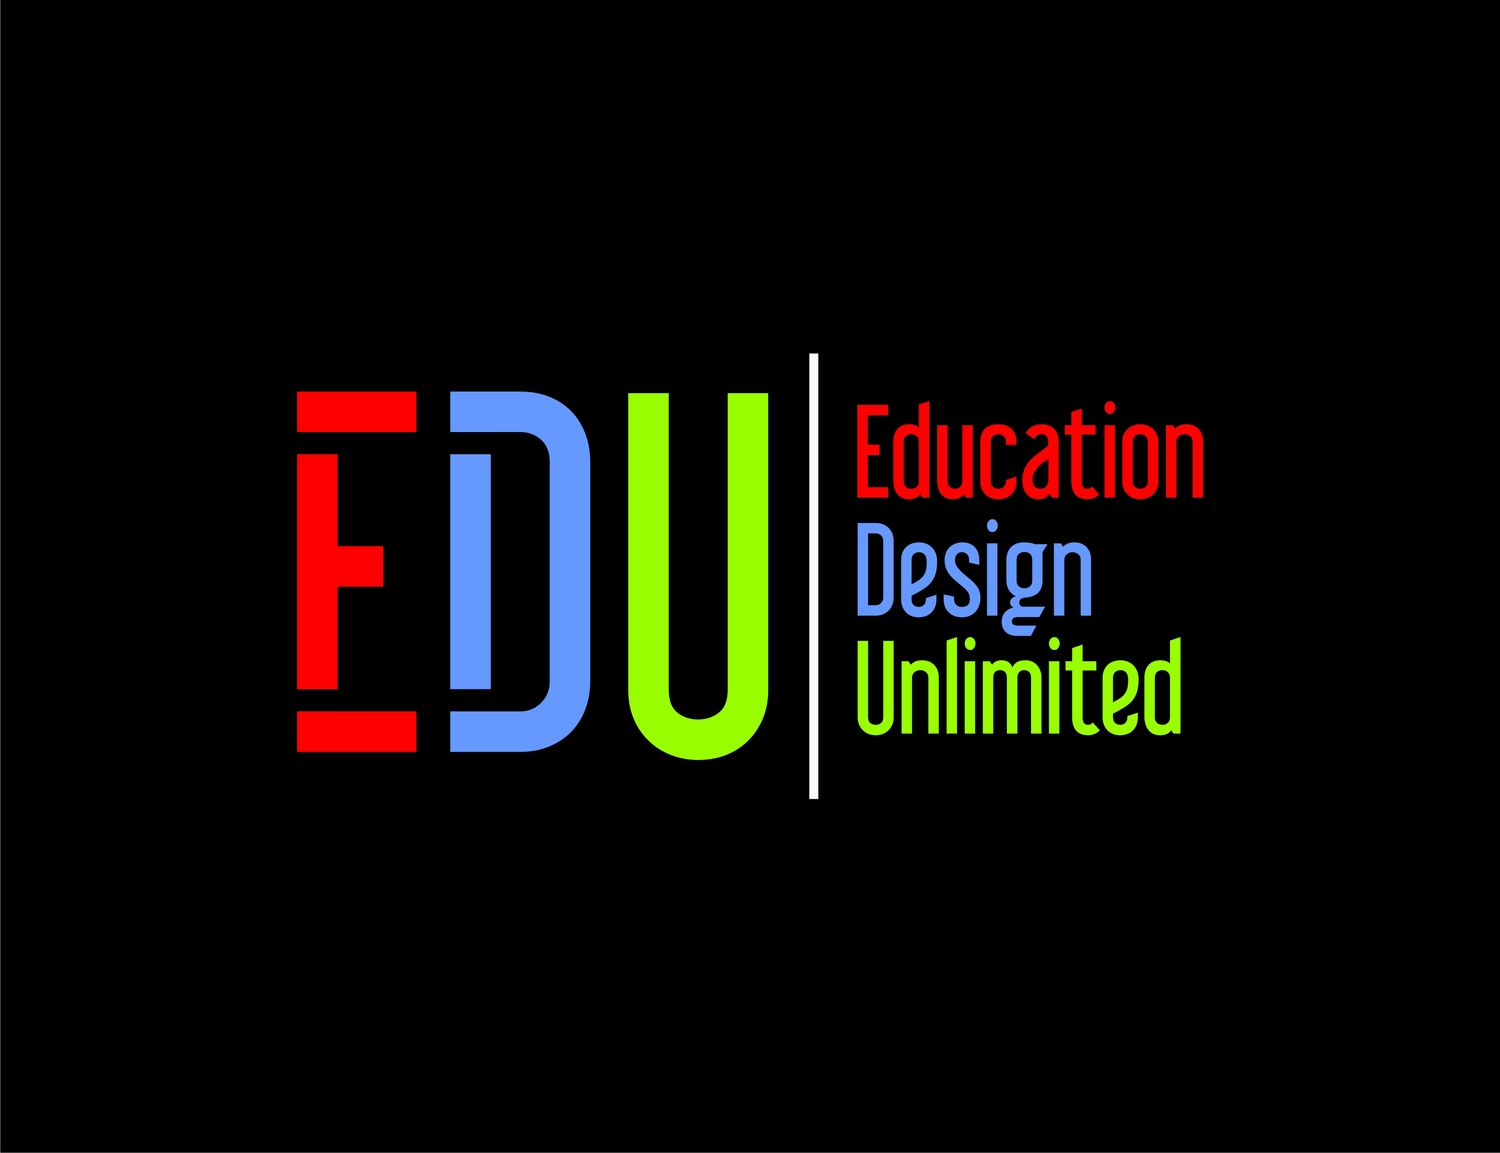 Education Design Unlimited